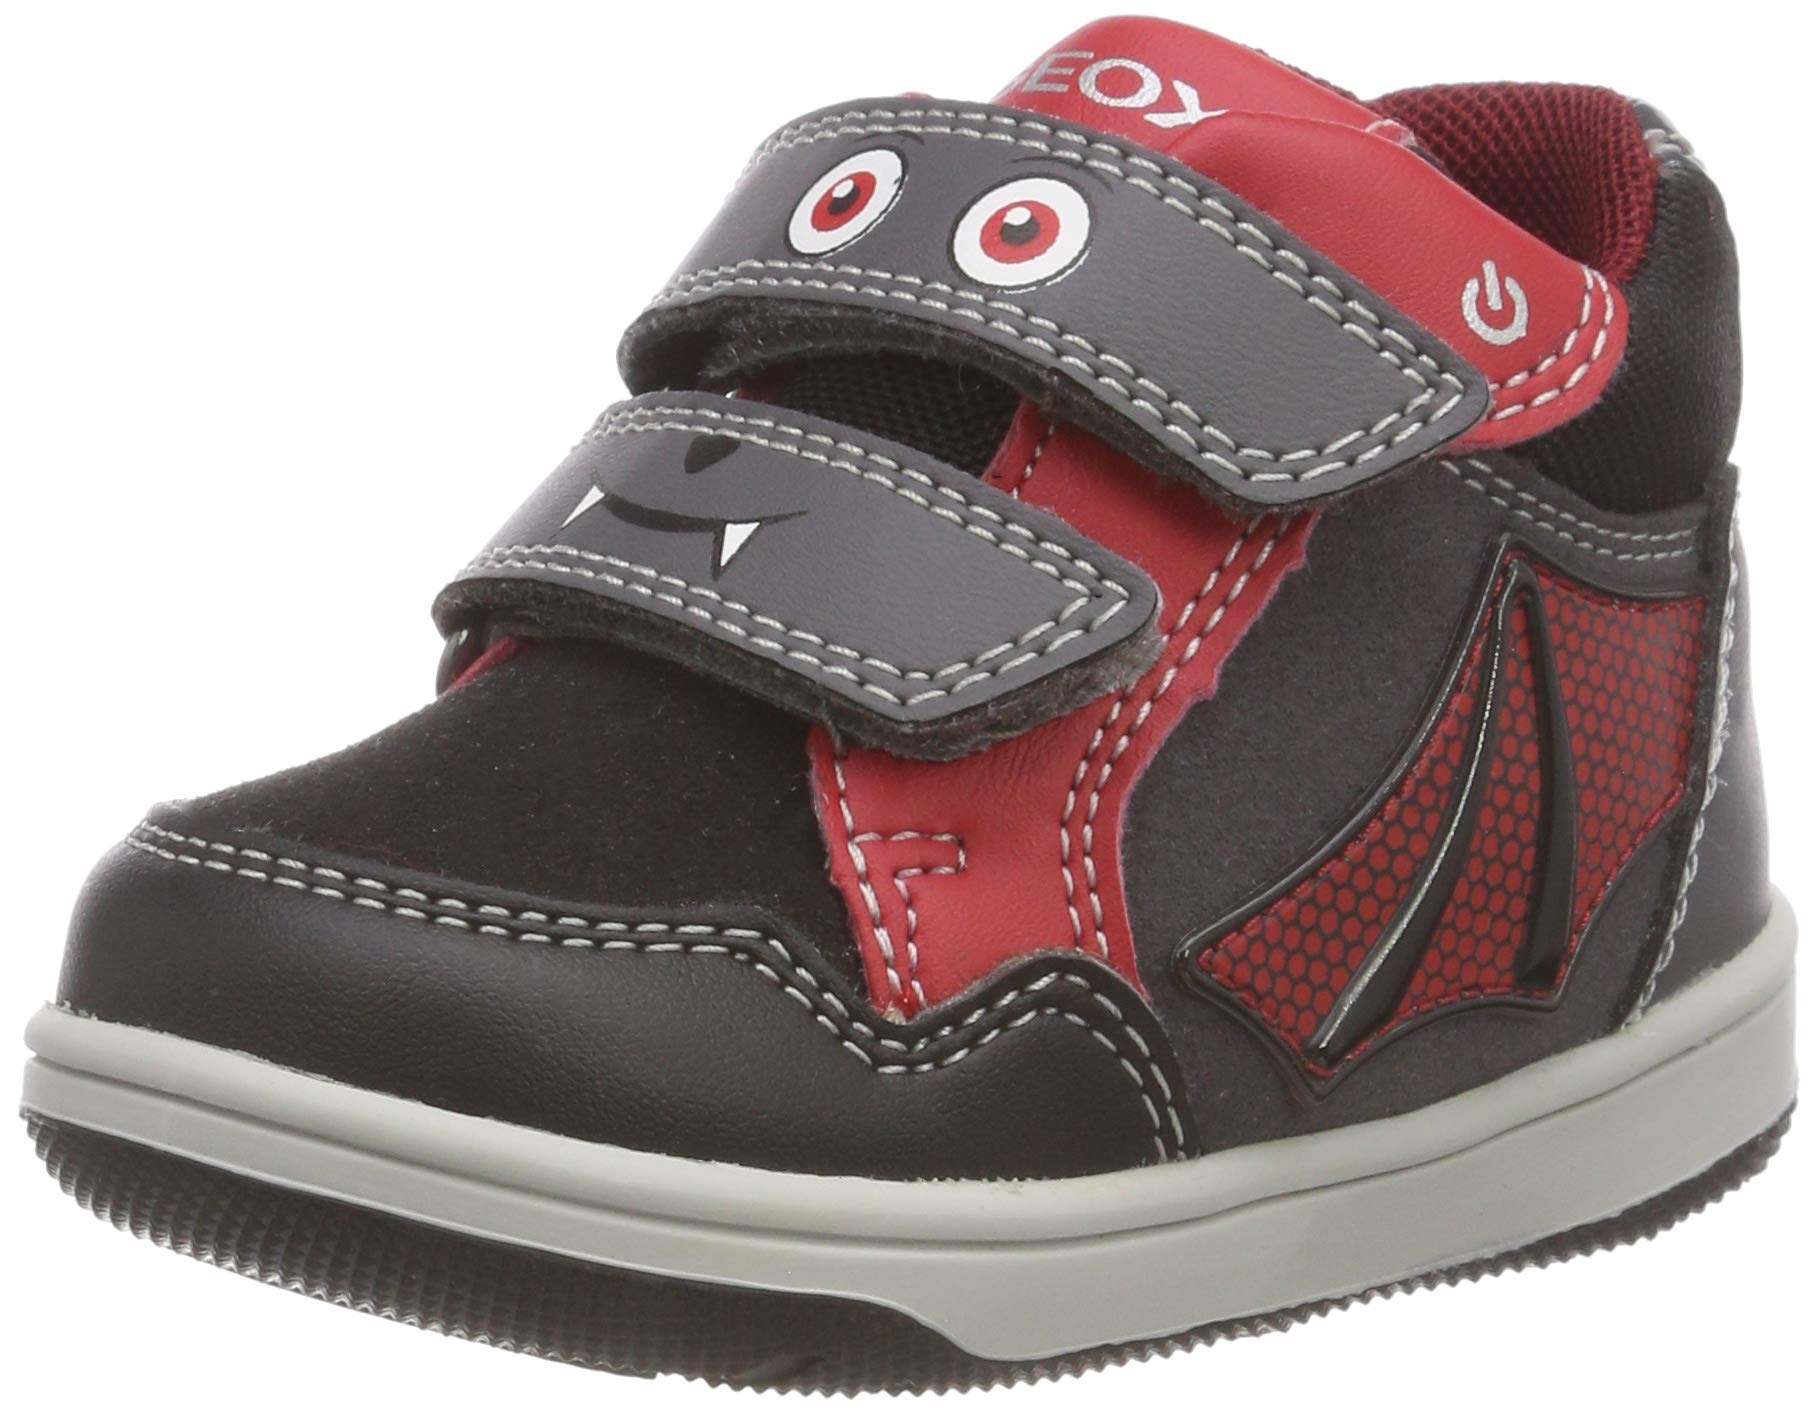 Geox B New Flick Boy C, Zapatillas para Bebés